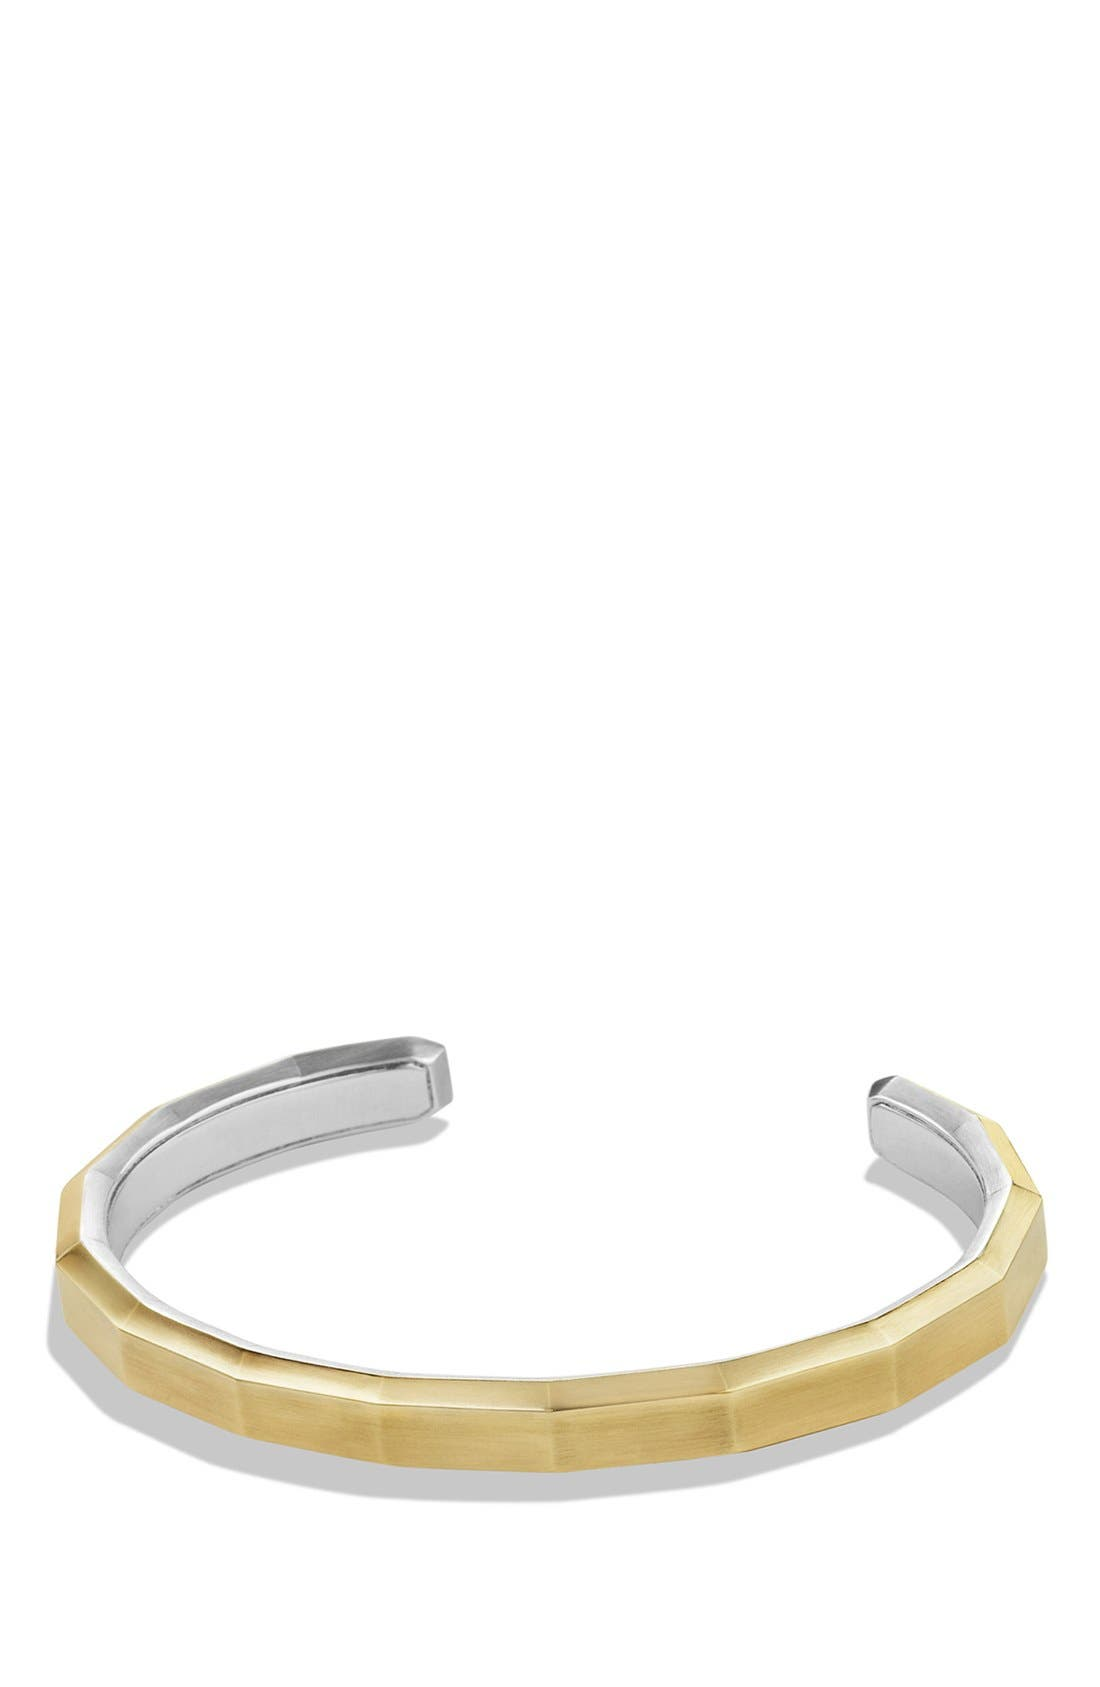 Main Image - David Yurman 'Faceted Metal' Cuff Bracelet with 18k Gold